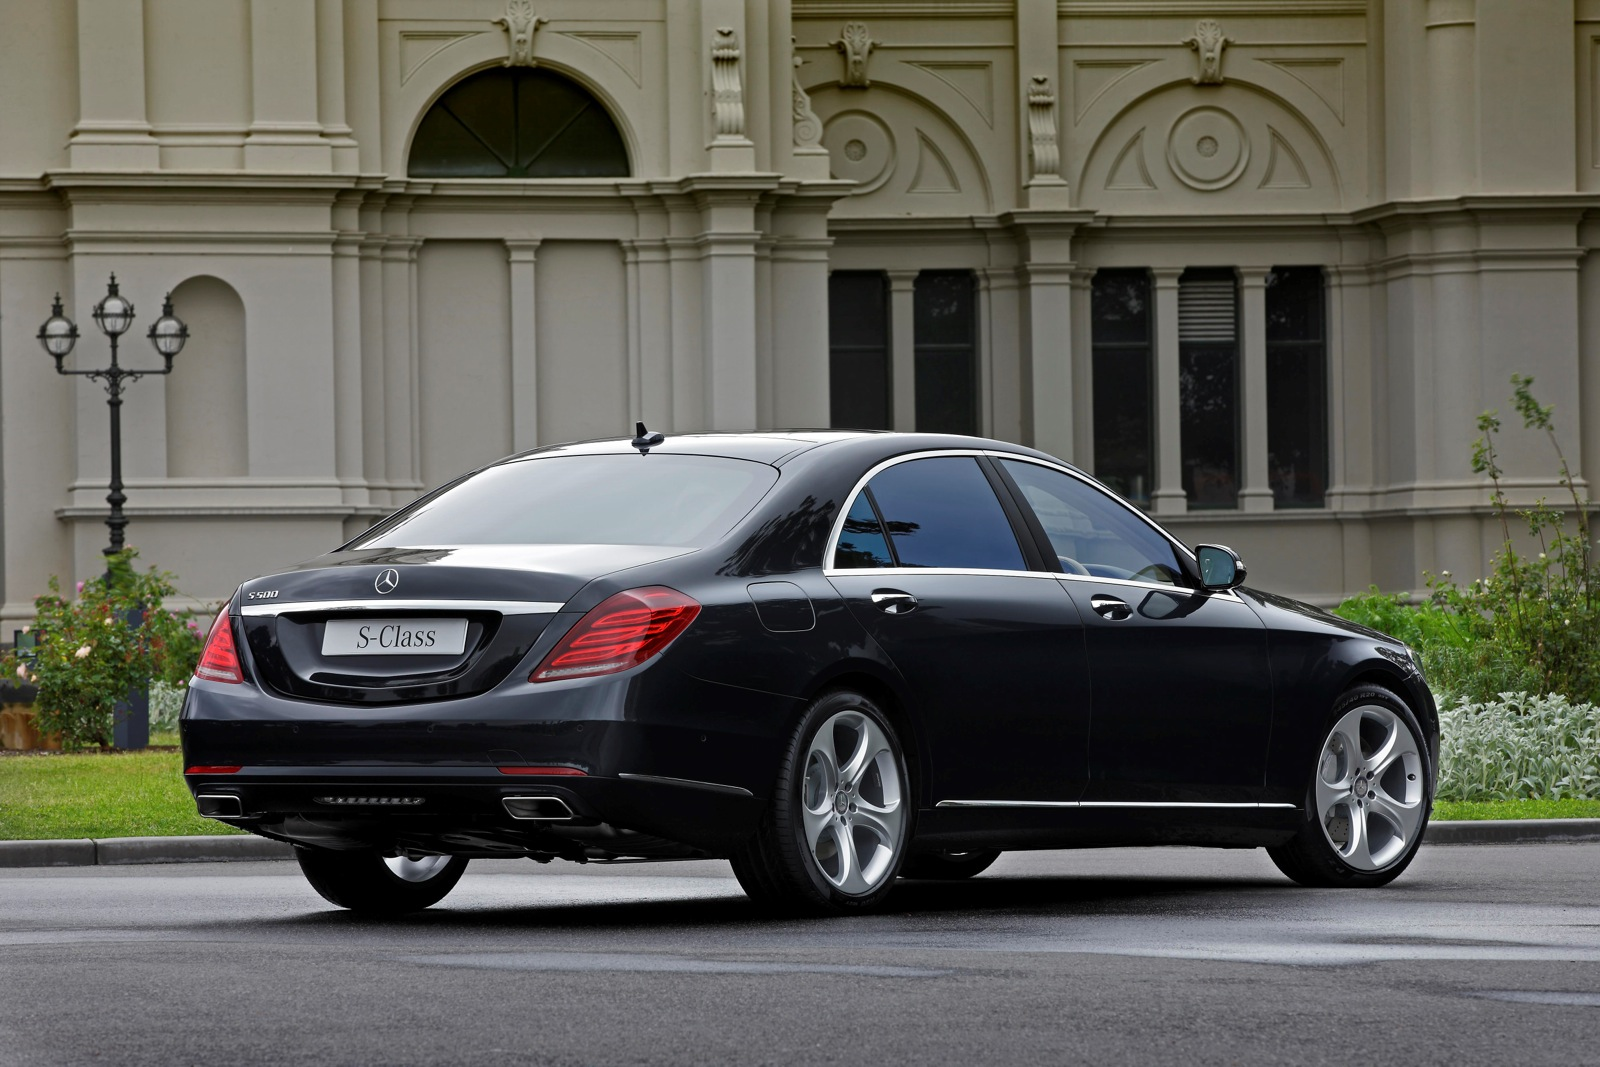 2014 Mercedes Benz S Class Unveiled In Melbourne